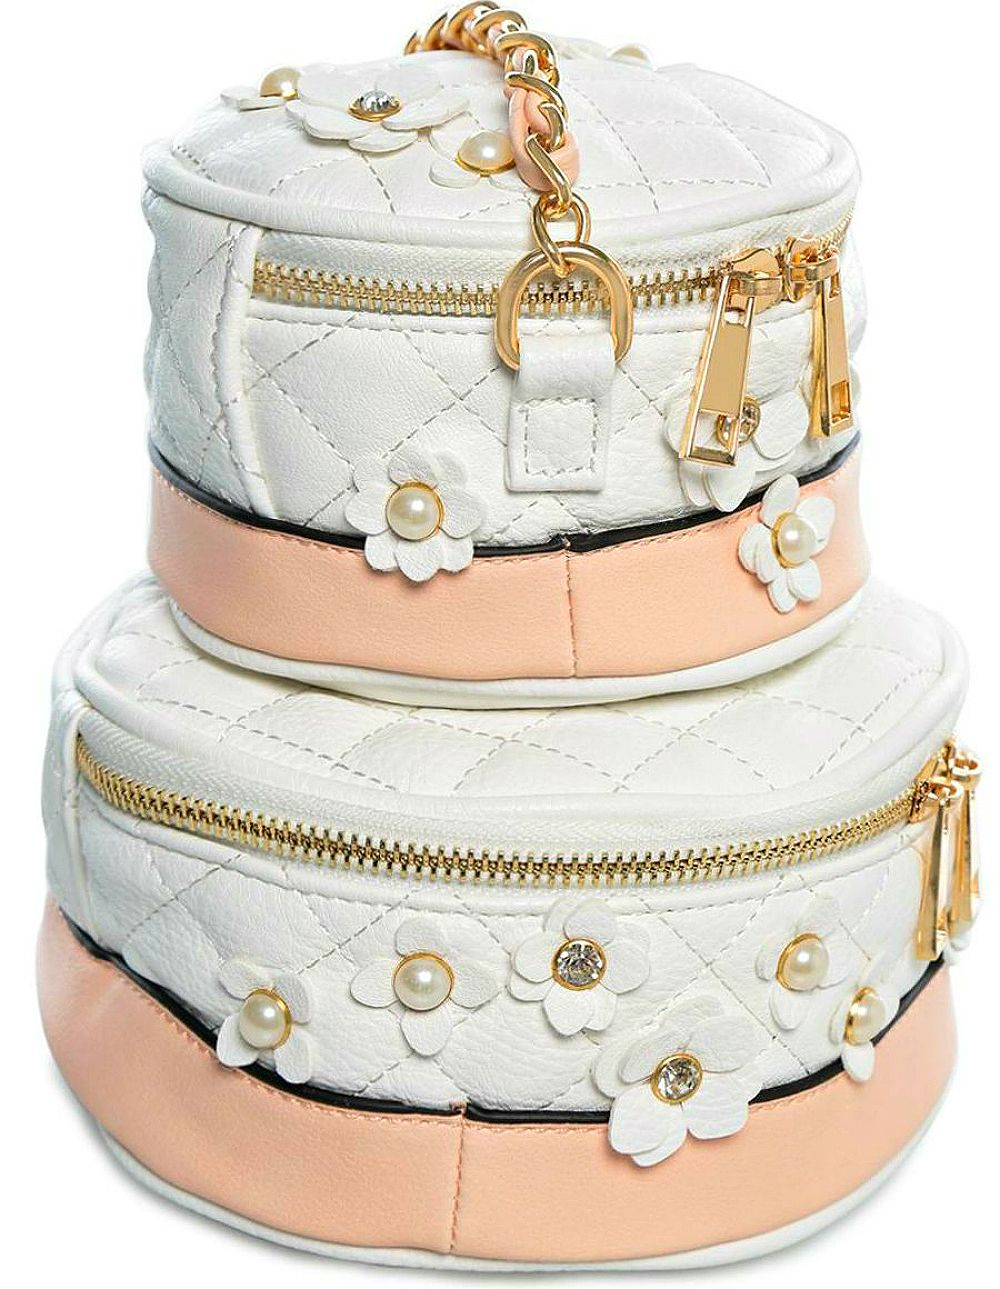 Aldo Rochelle Wedding Cake Cross Body Bag features quilted fabric with floral embellishments, pastel peach accents & the Happily Ever After message! Perfect for brides and romantic ladies!